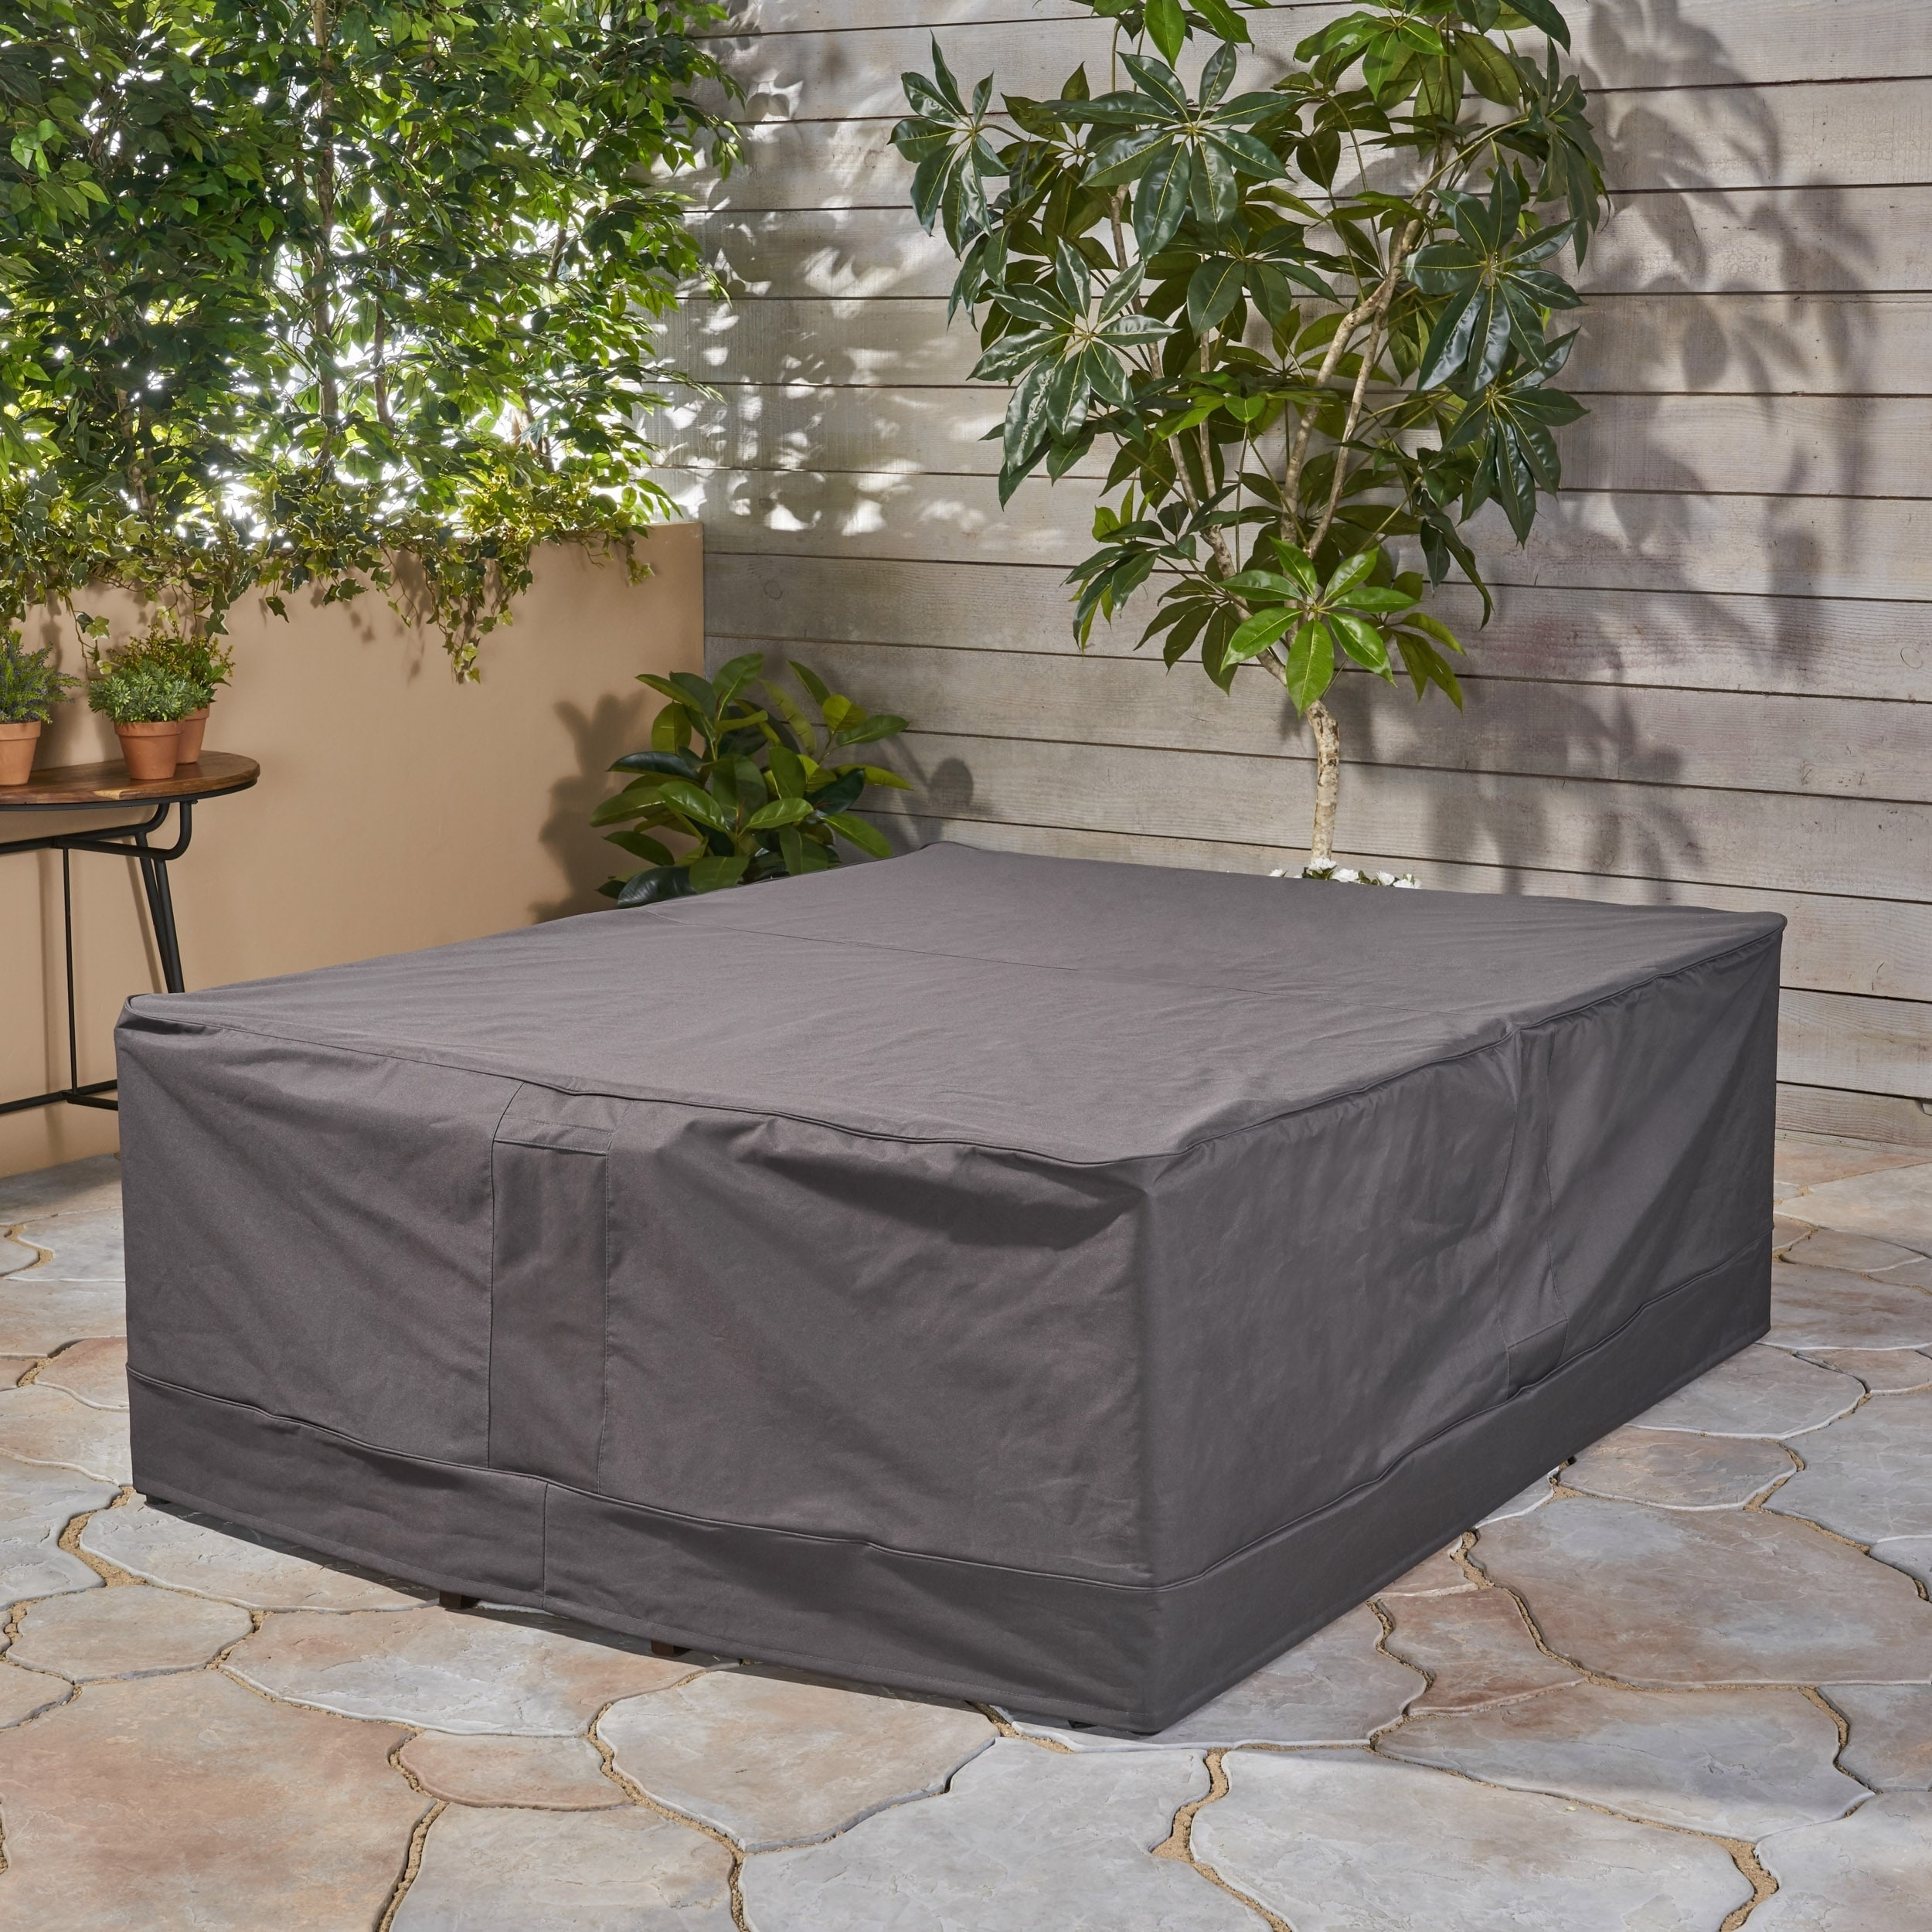 Shop Shield Outdoor Waterproof Fabric Chat Set Patio Cover In Natural By  Christopher Knight Home   On Sale   Free Shipping Today   Overstock.com    15211973